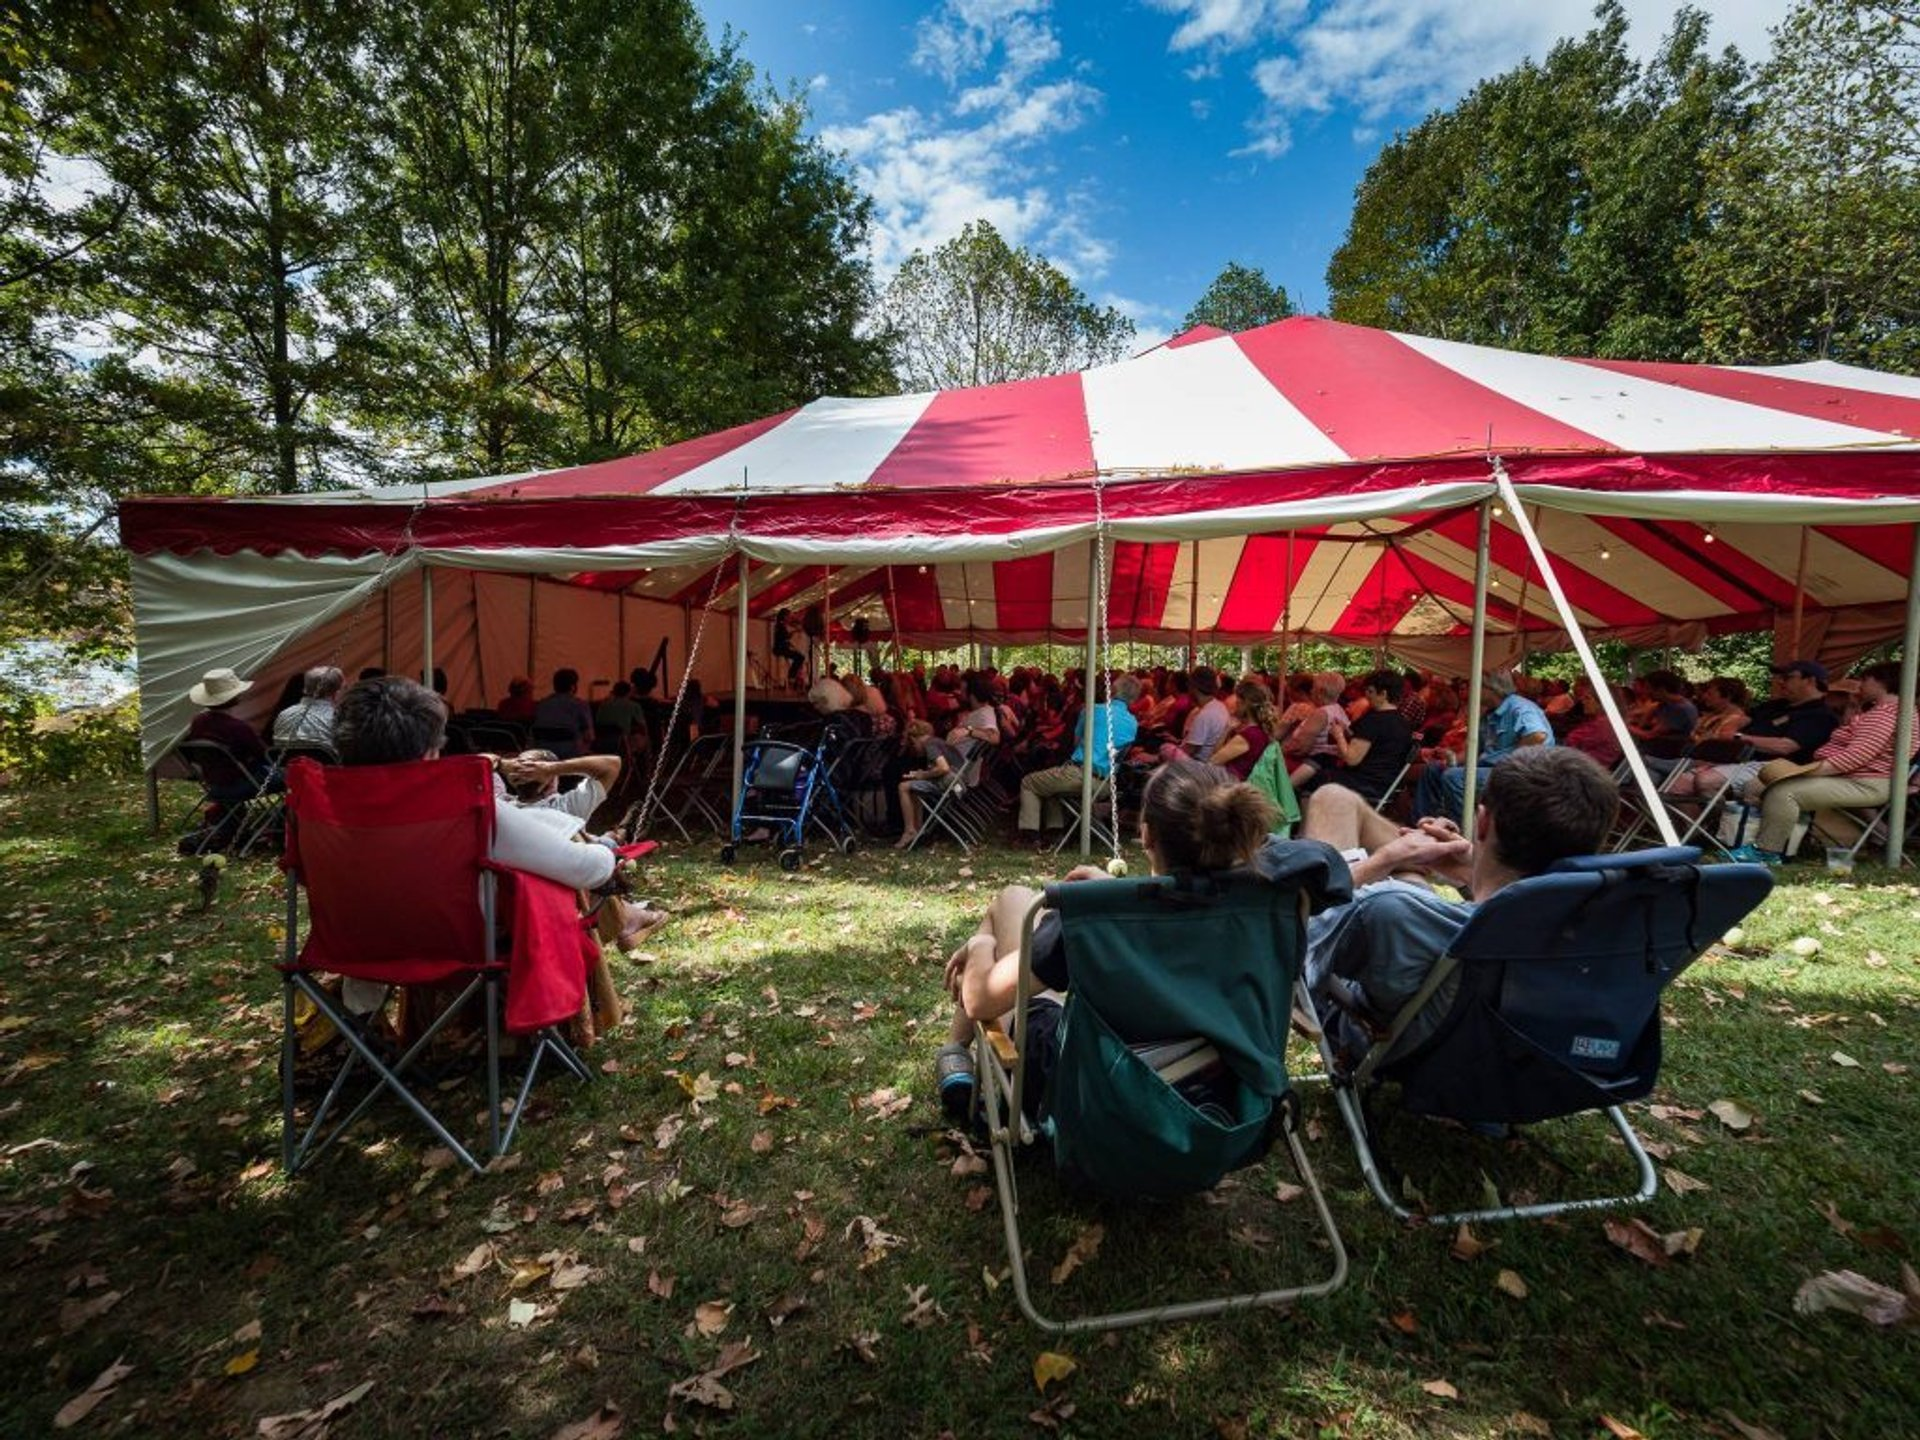 National Storytelling Festival in Tennessee - Best Season 2020